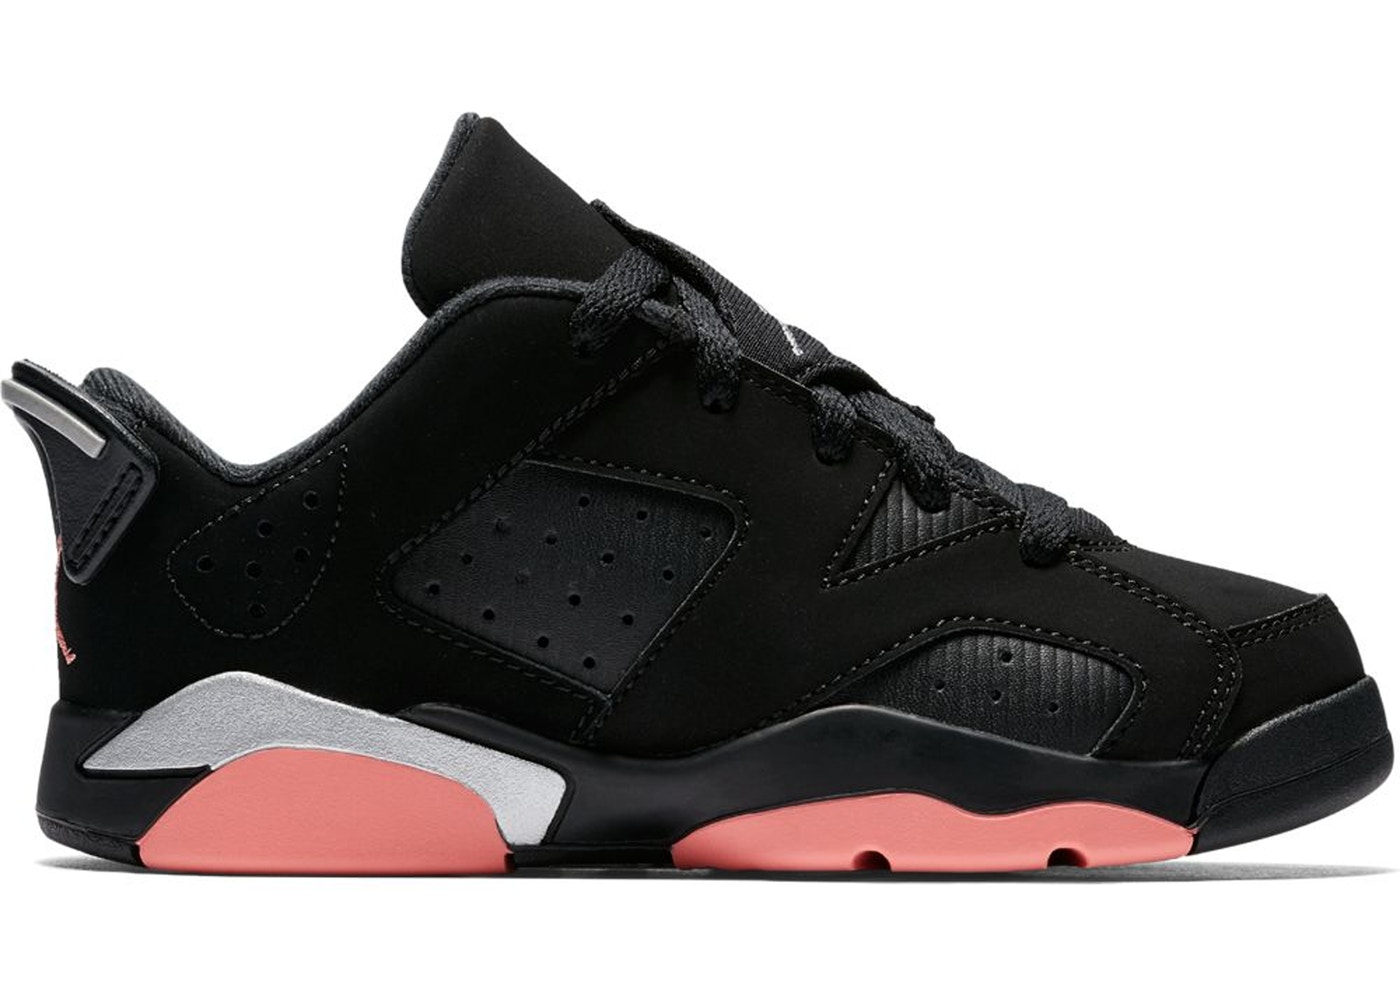 new product f4aa7 4c92a Air Jordan 6 Size 11 Shoes - Release Date